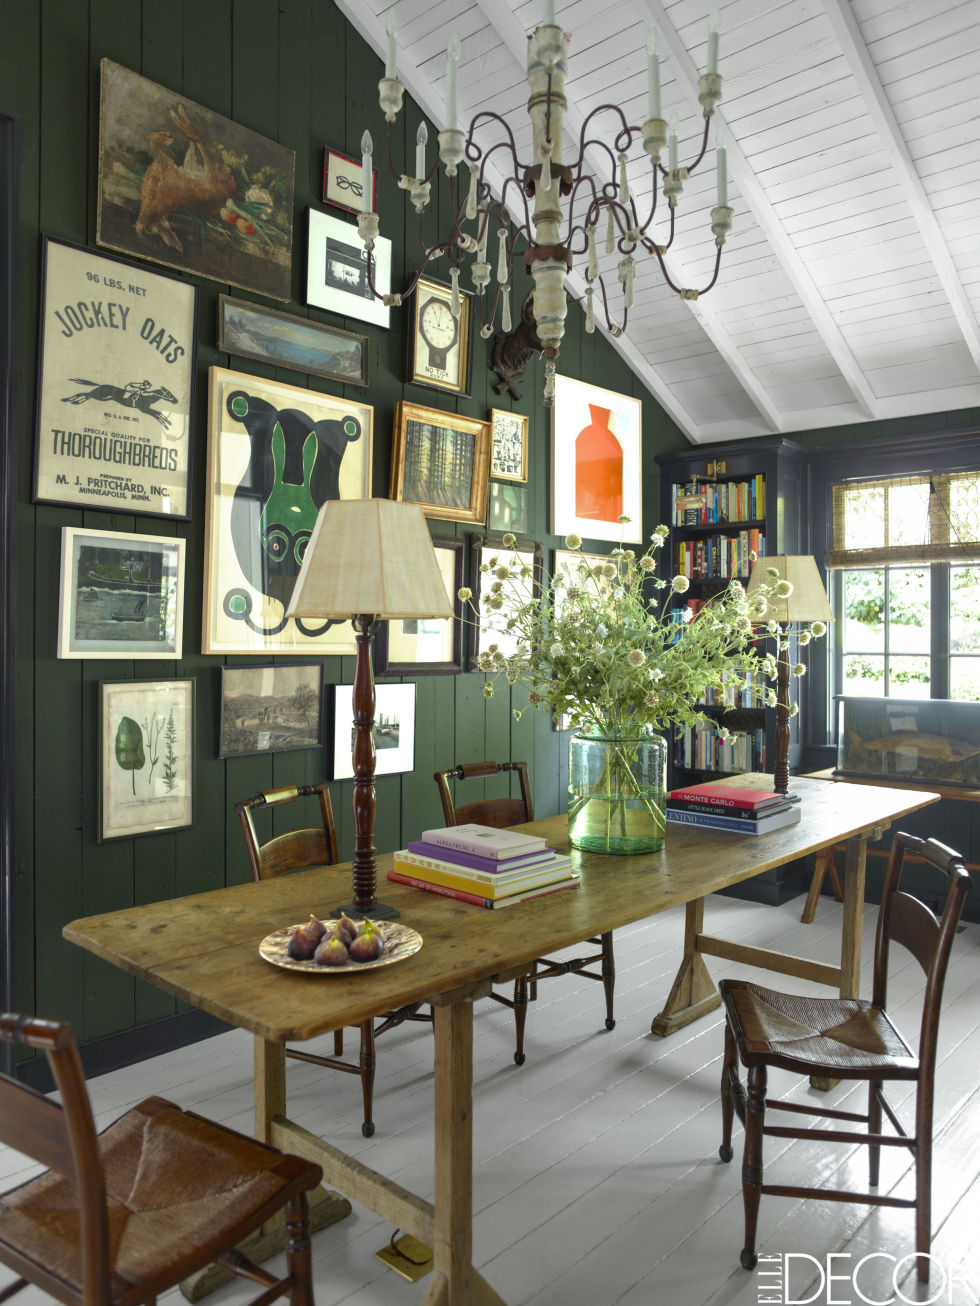 Emery & Cie' s 'Vermoulu 6' deep hunter green provides the perfect backdrop for the couple's collection of art.